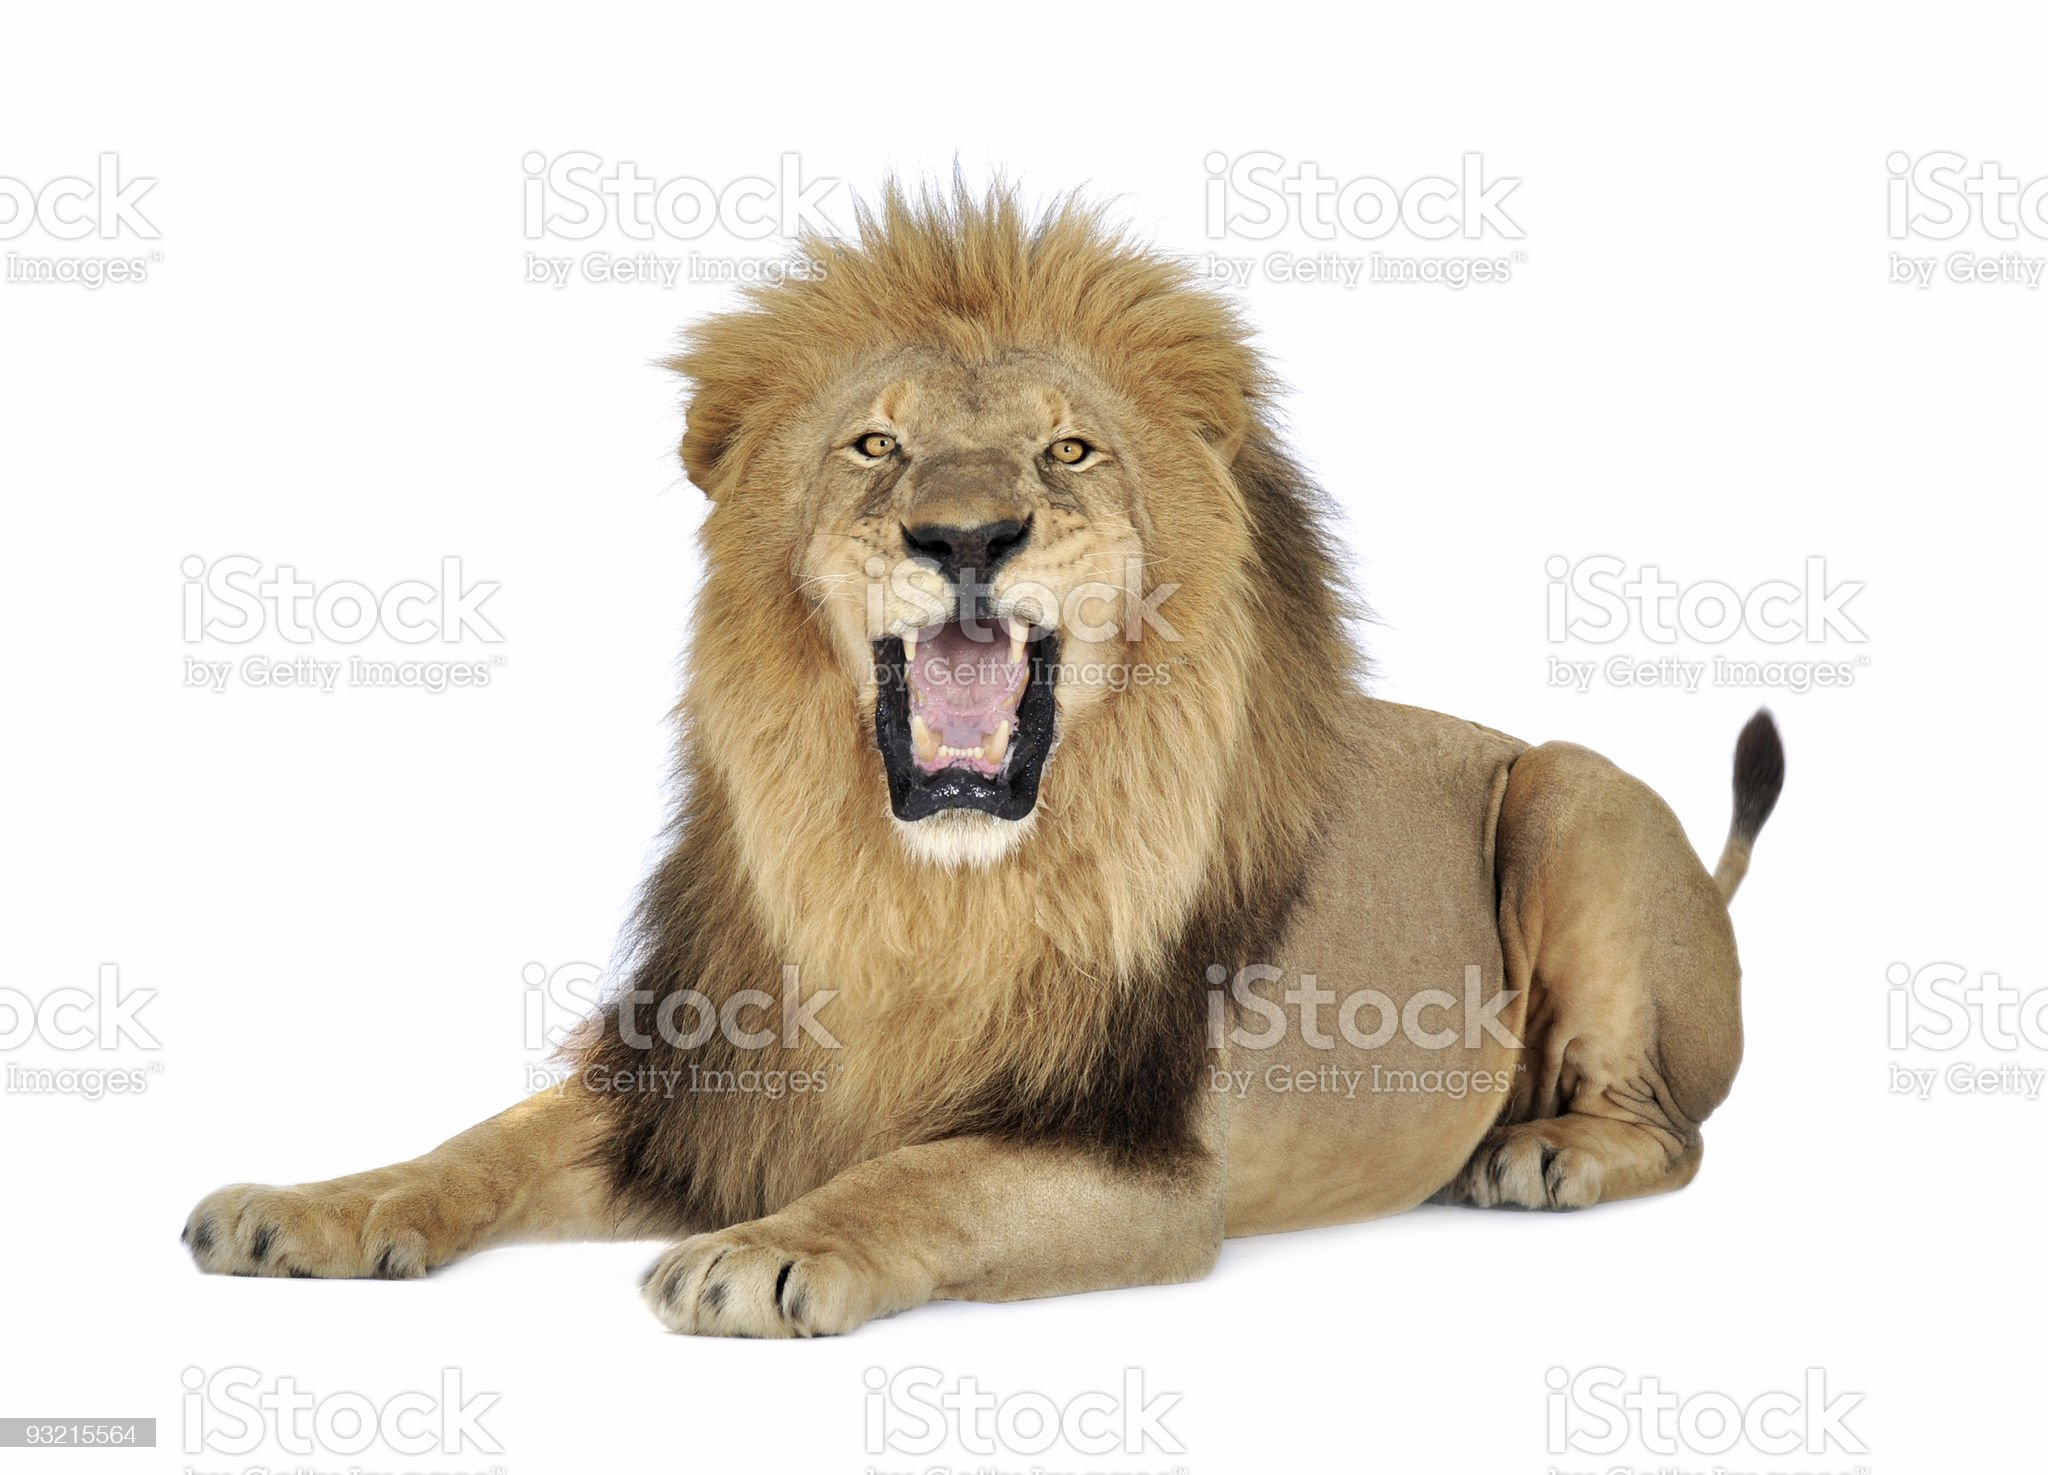 A lion roaring on a white background royalty-free stock photo